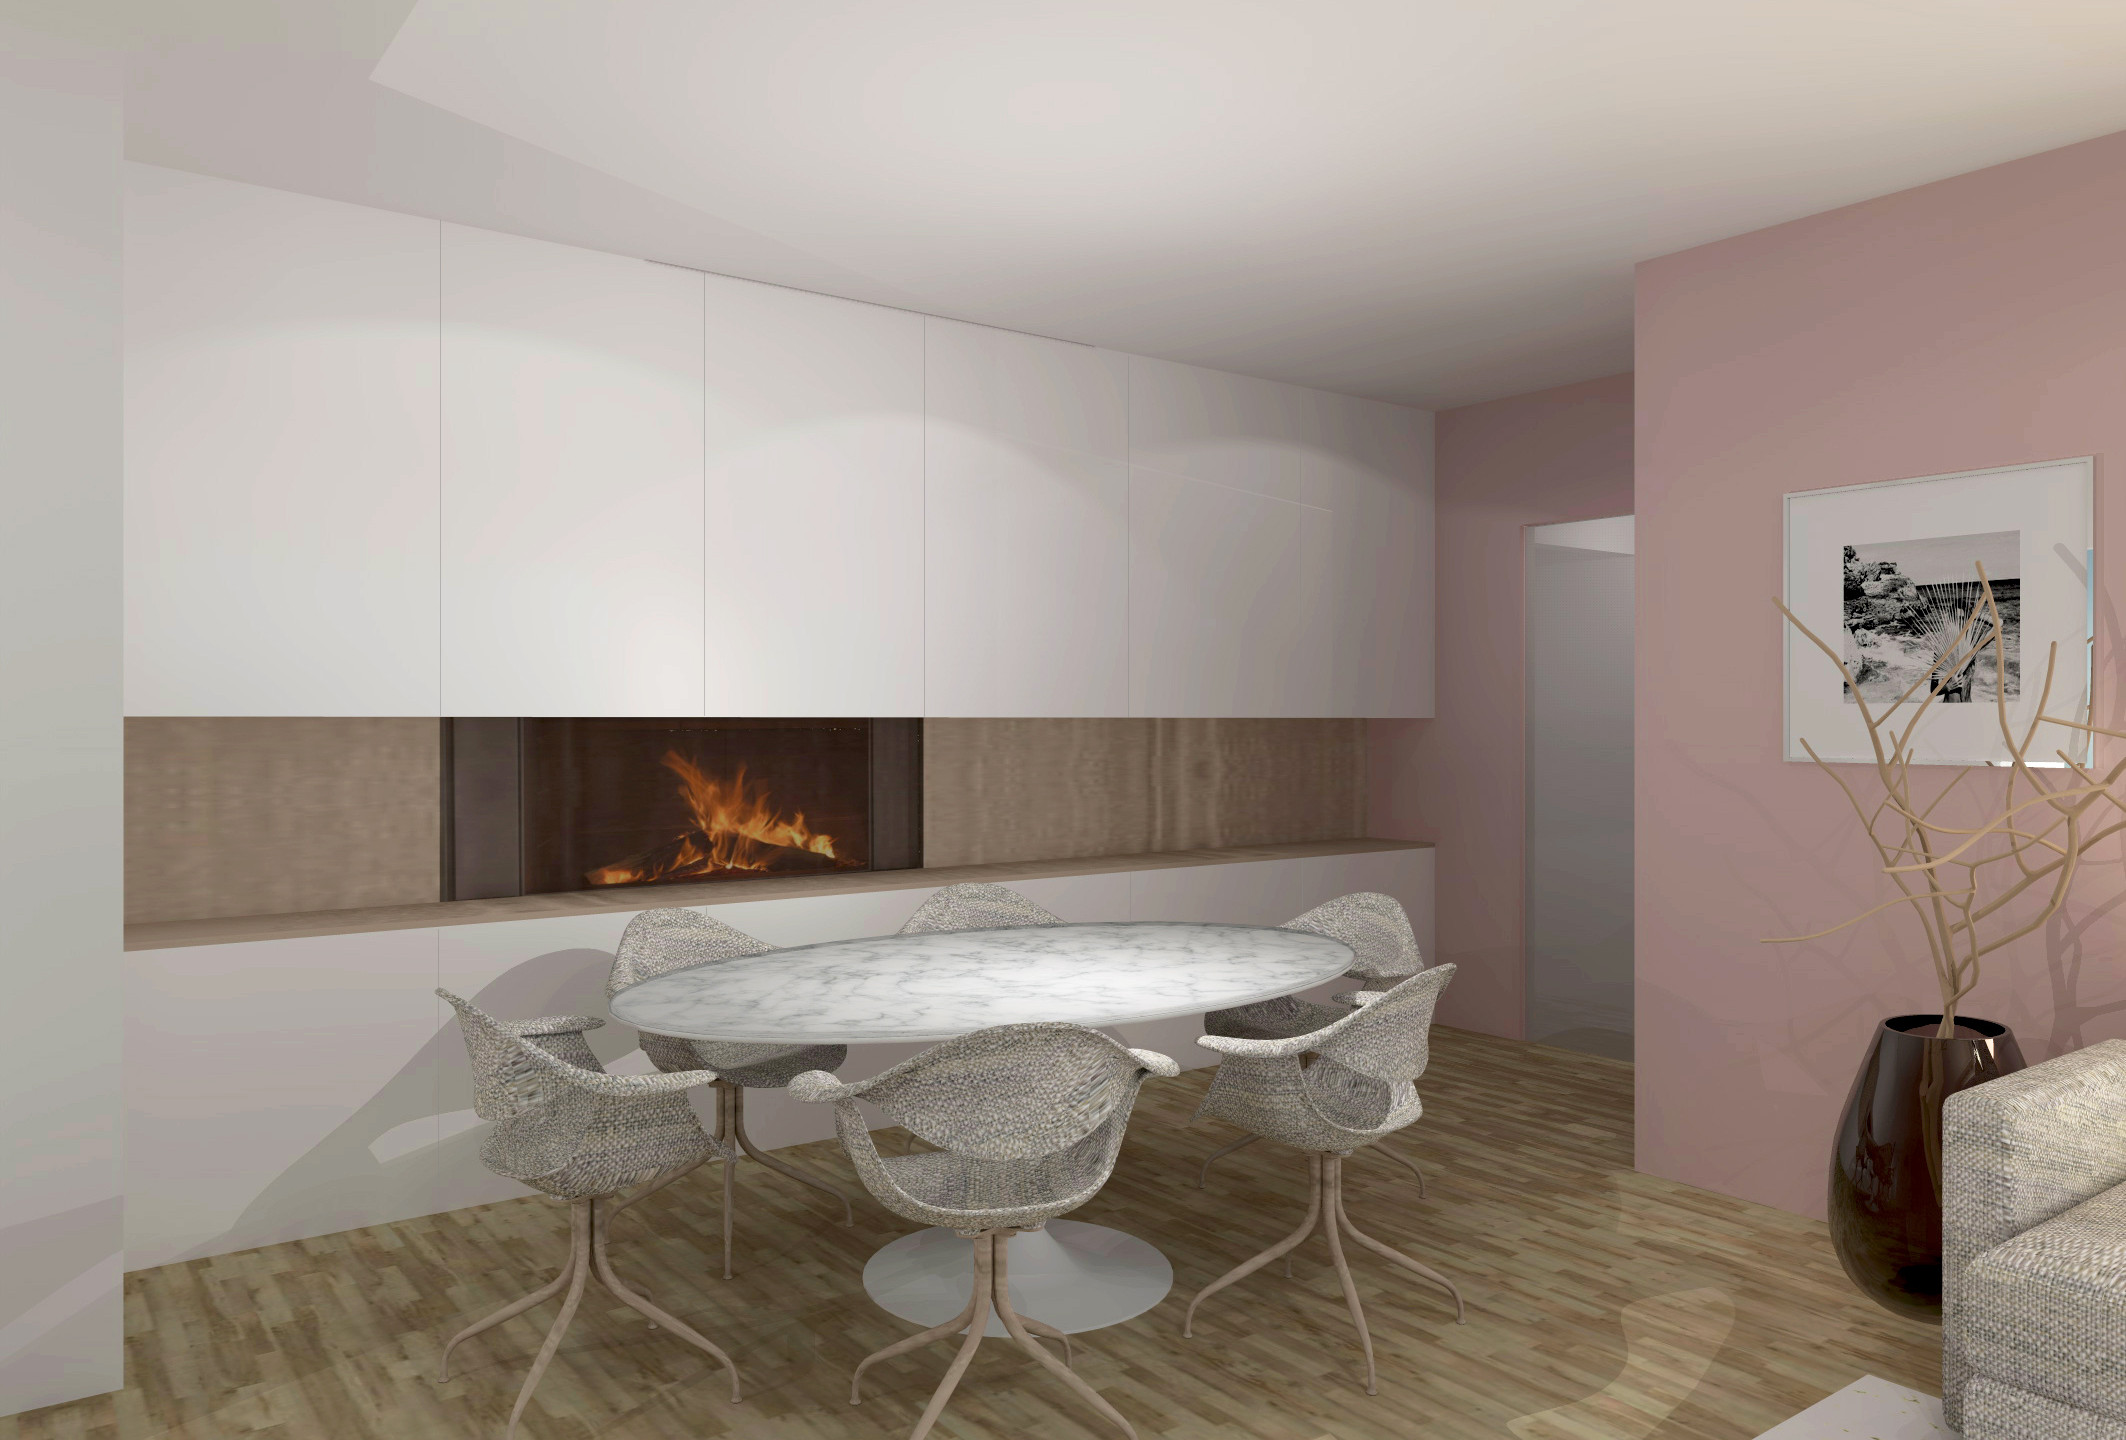 L&++_architecture_Epervier 003